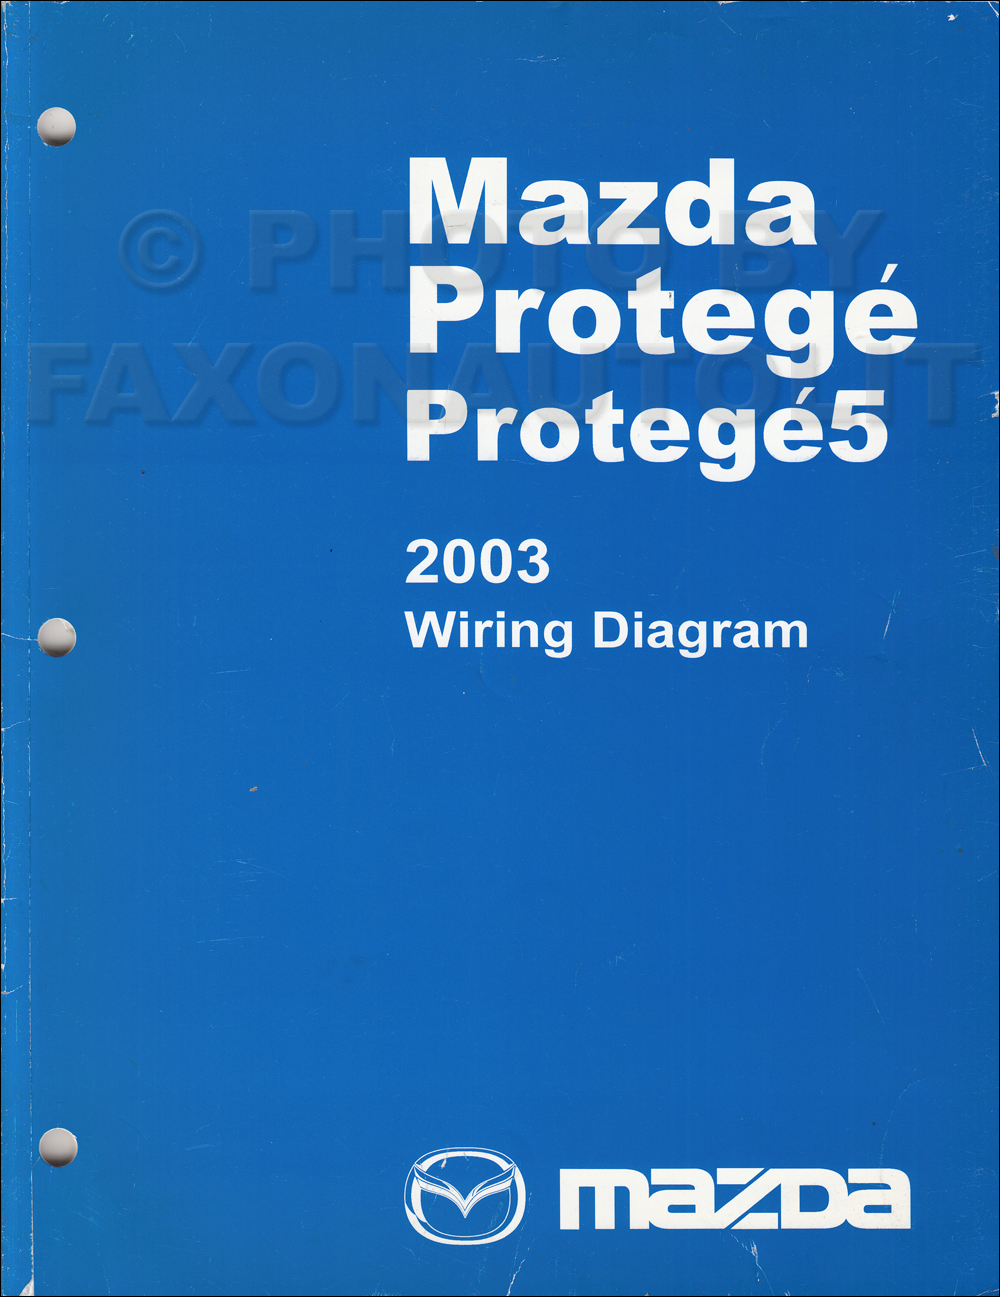 medium resolution of 2003 mazda protege and protege5 wiring diagram manual original mazda 5 mazda protege wiring source 2000 mazda protege stereo